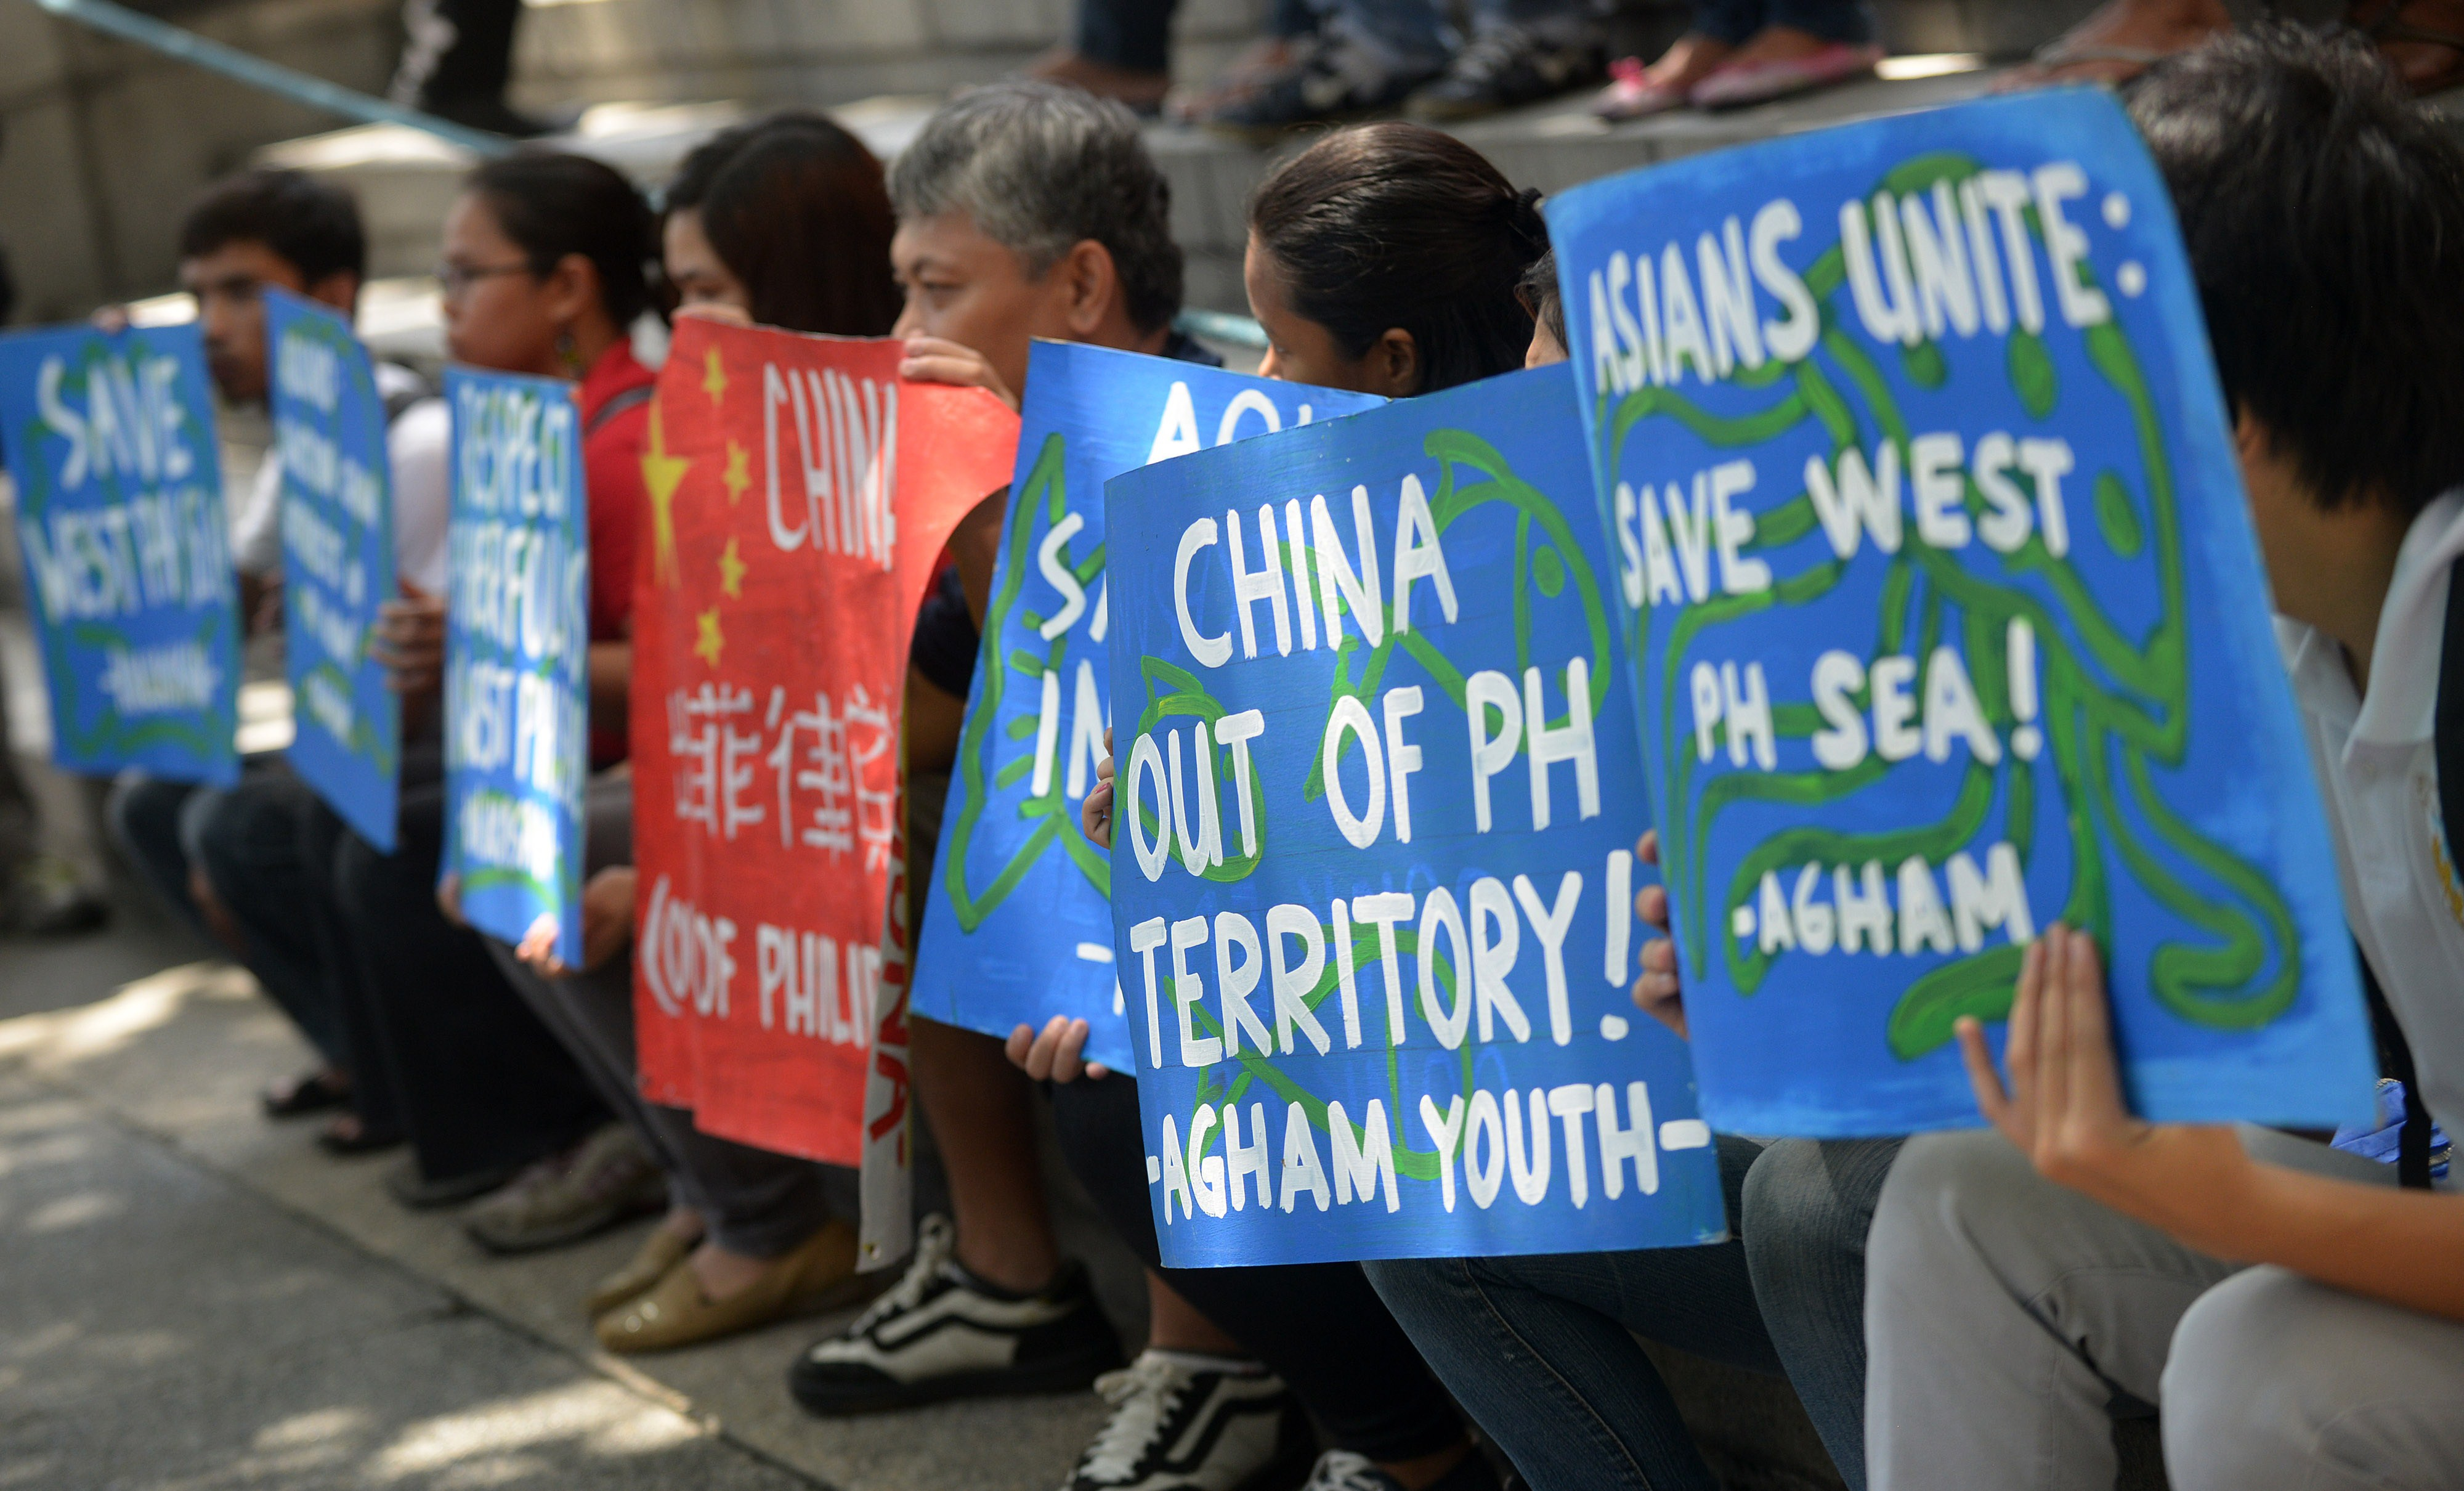 Filipino environmental activists display placards during a rally outside China's consular office in Manila on May 11, 2015, against China's reclamation and construction activities on islands and reefs in the Spratly Group of the South China Sea that are also claimed by the Philippines. Photo by JAY DIRECTO/AFP/Getty Images.